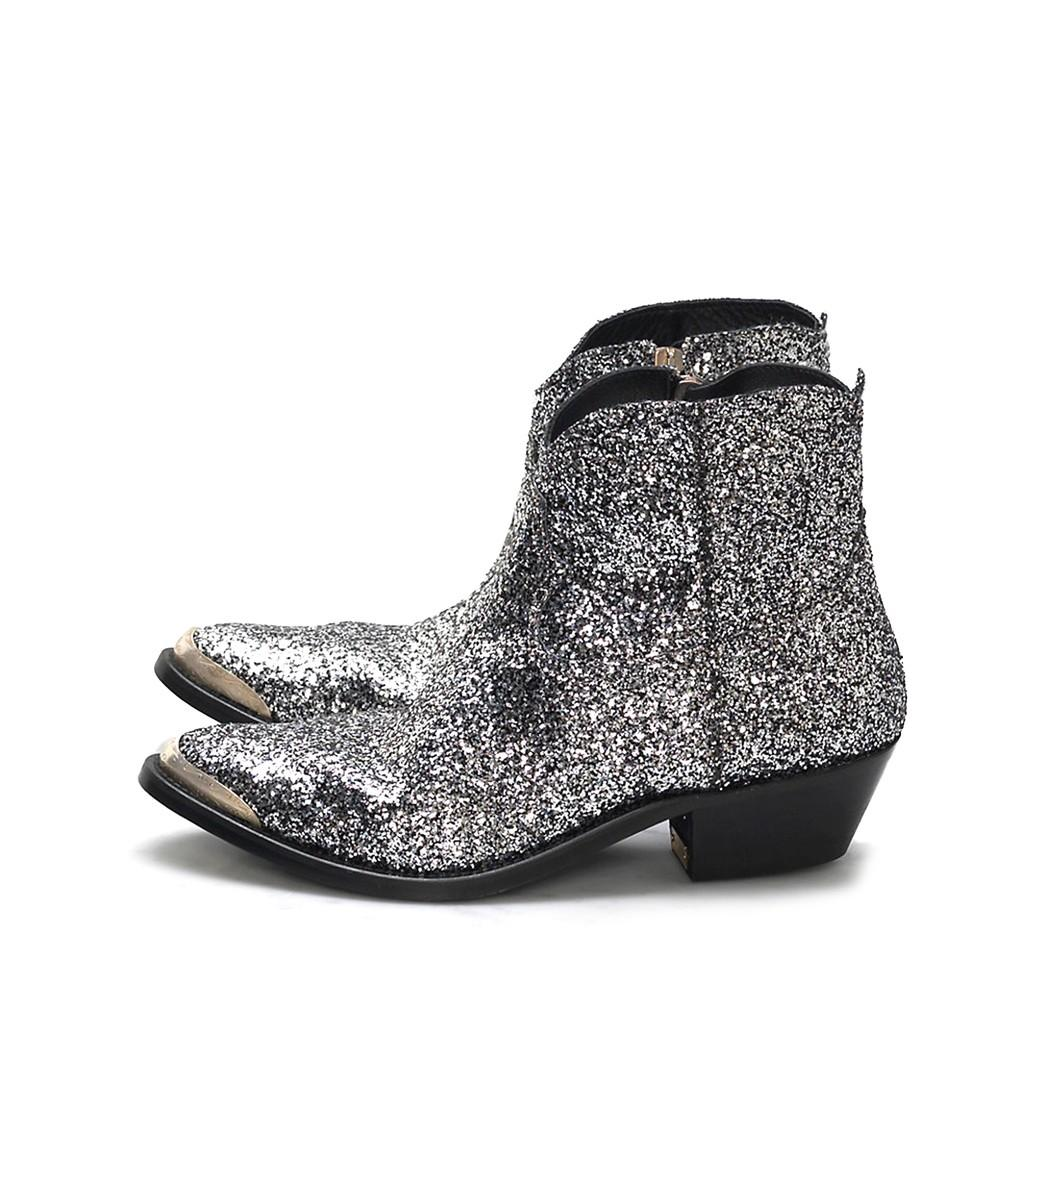 b109191f7bd Silver/Black Glitter Young Boots